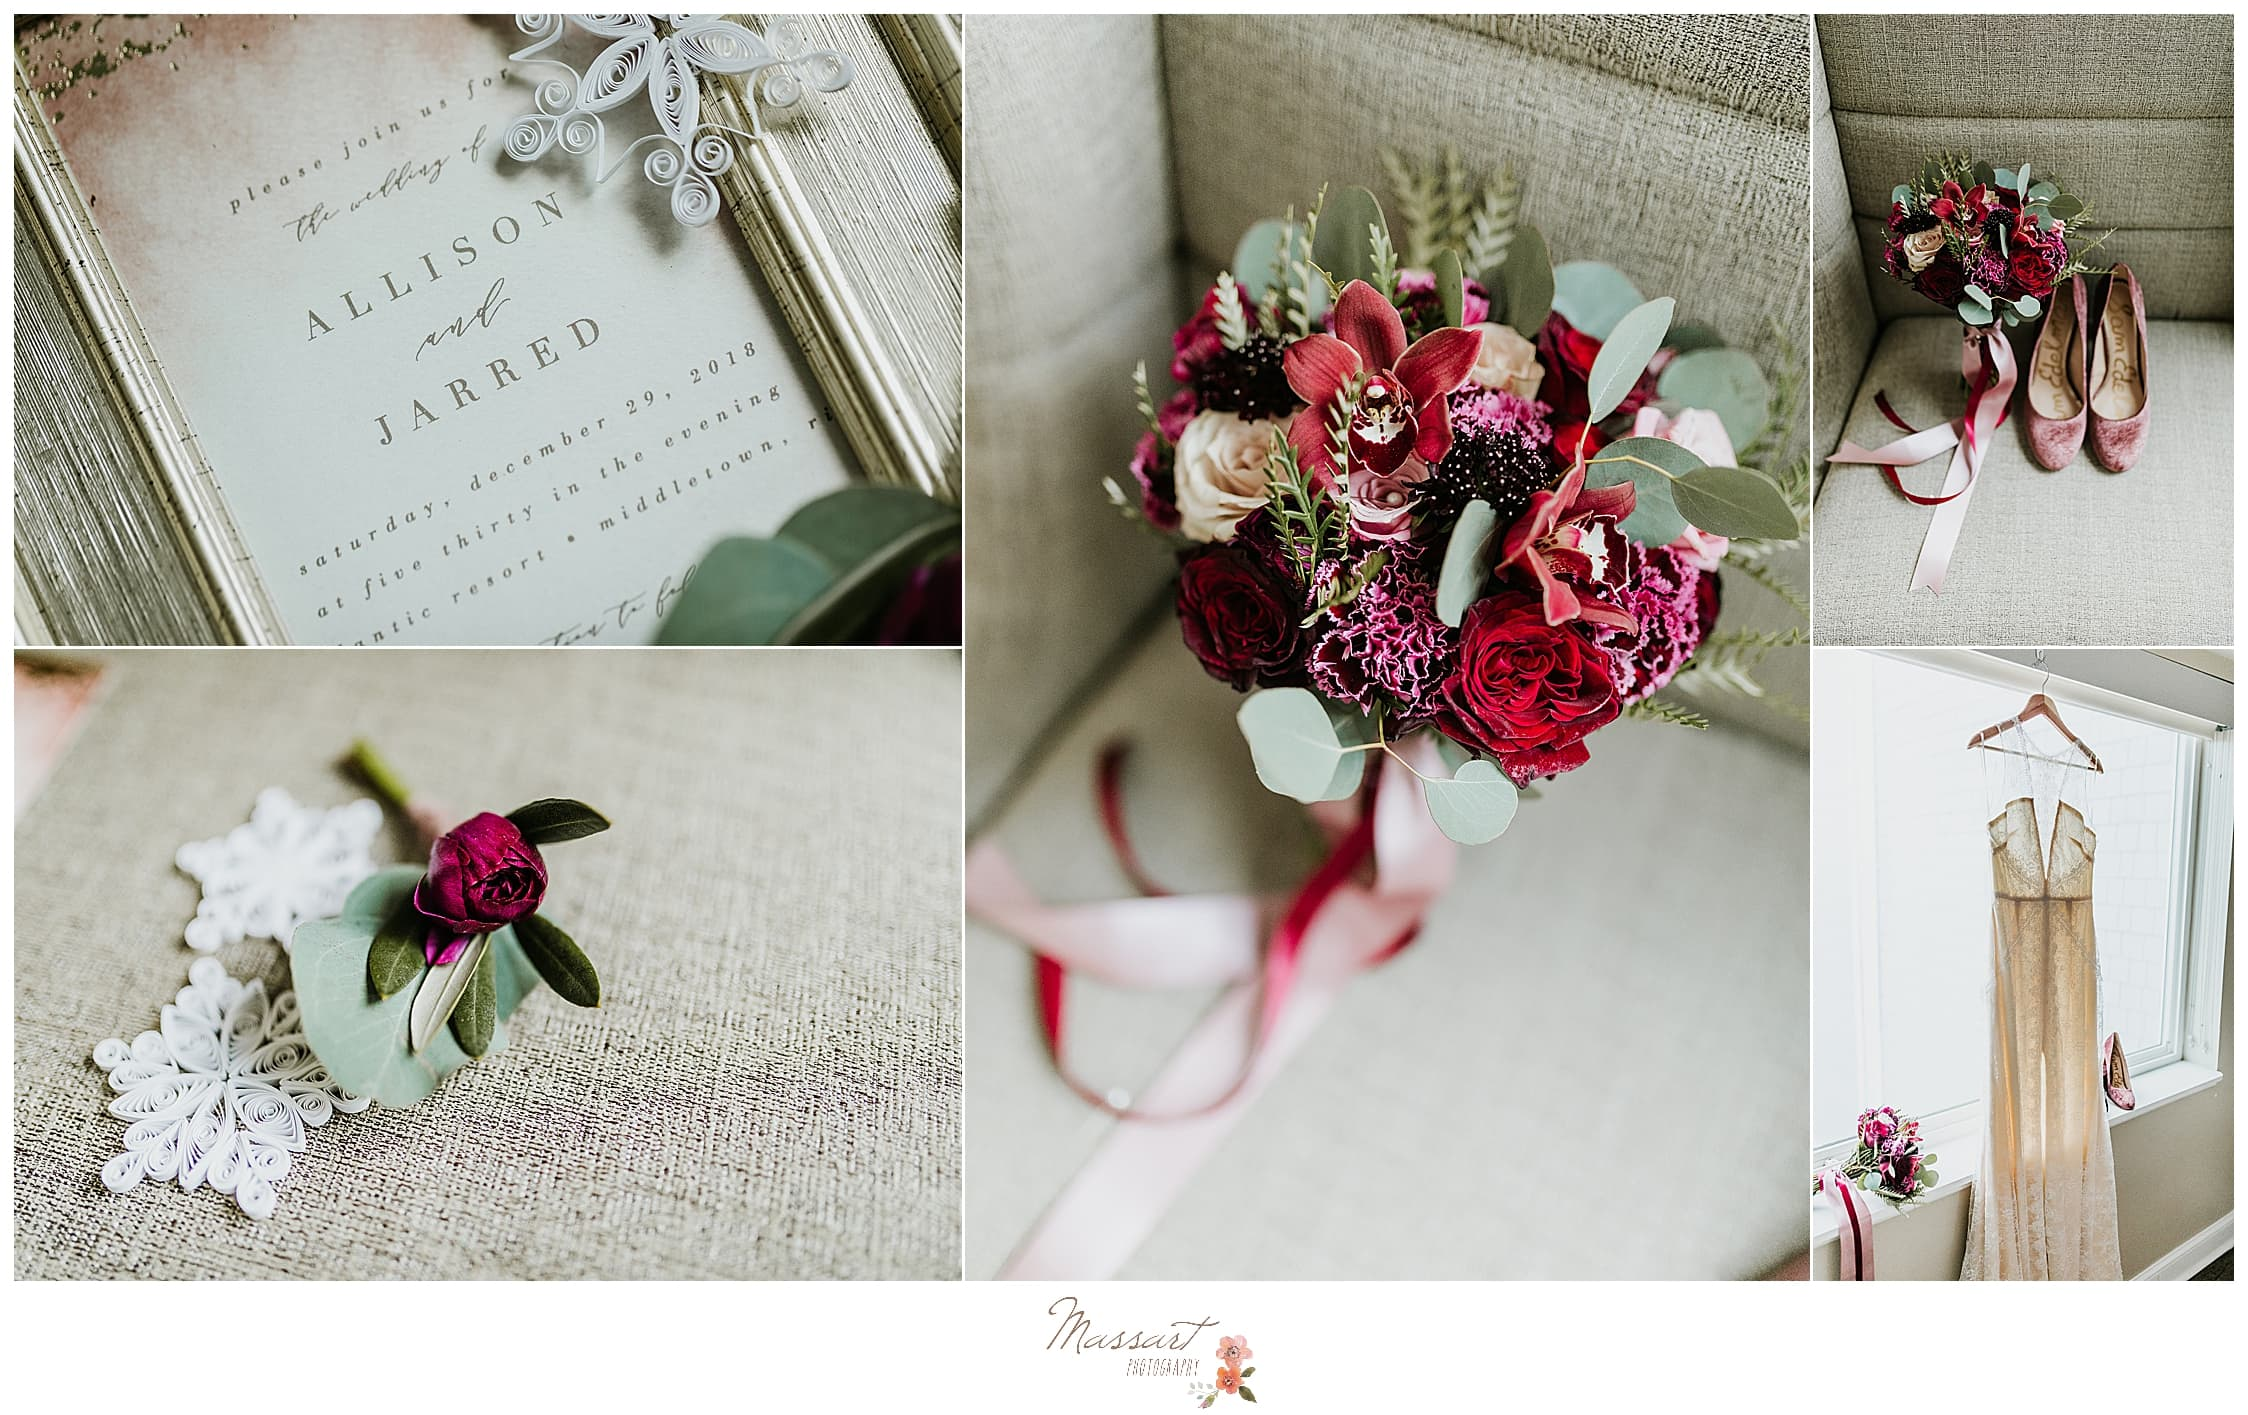 Massart Photography captures the bride's wedding details, bouquet and dress for her newport wedding.